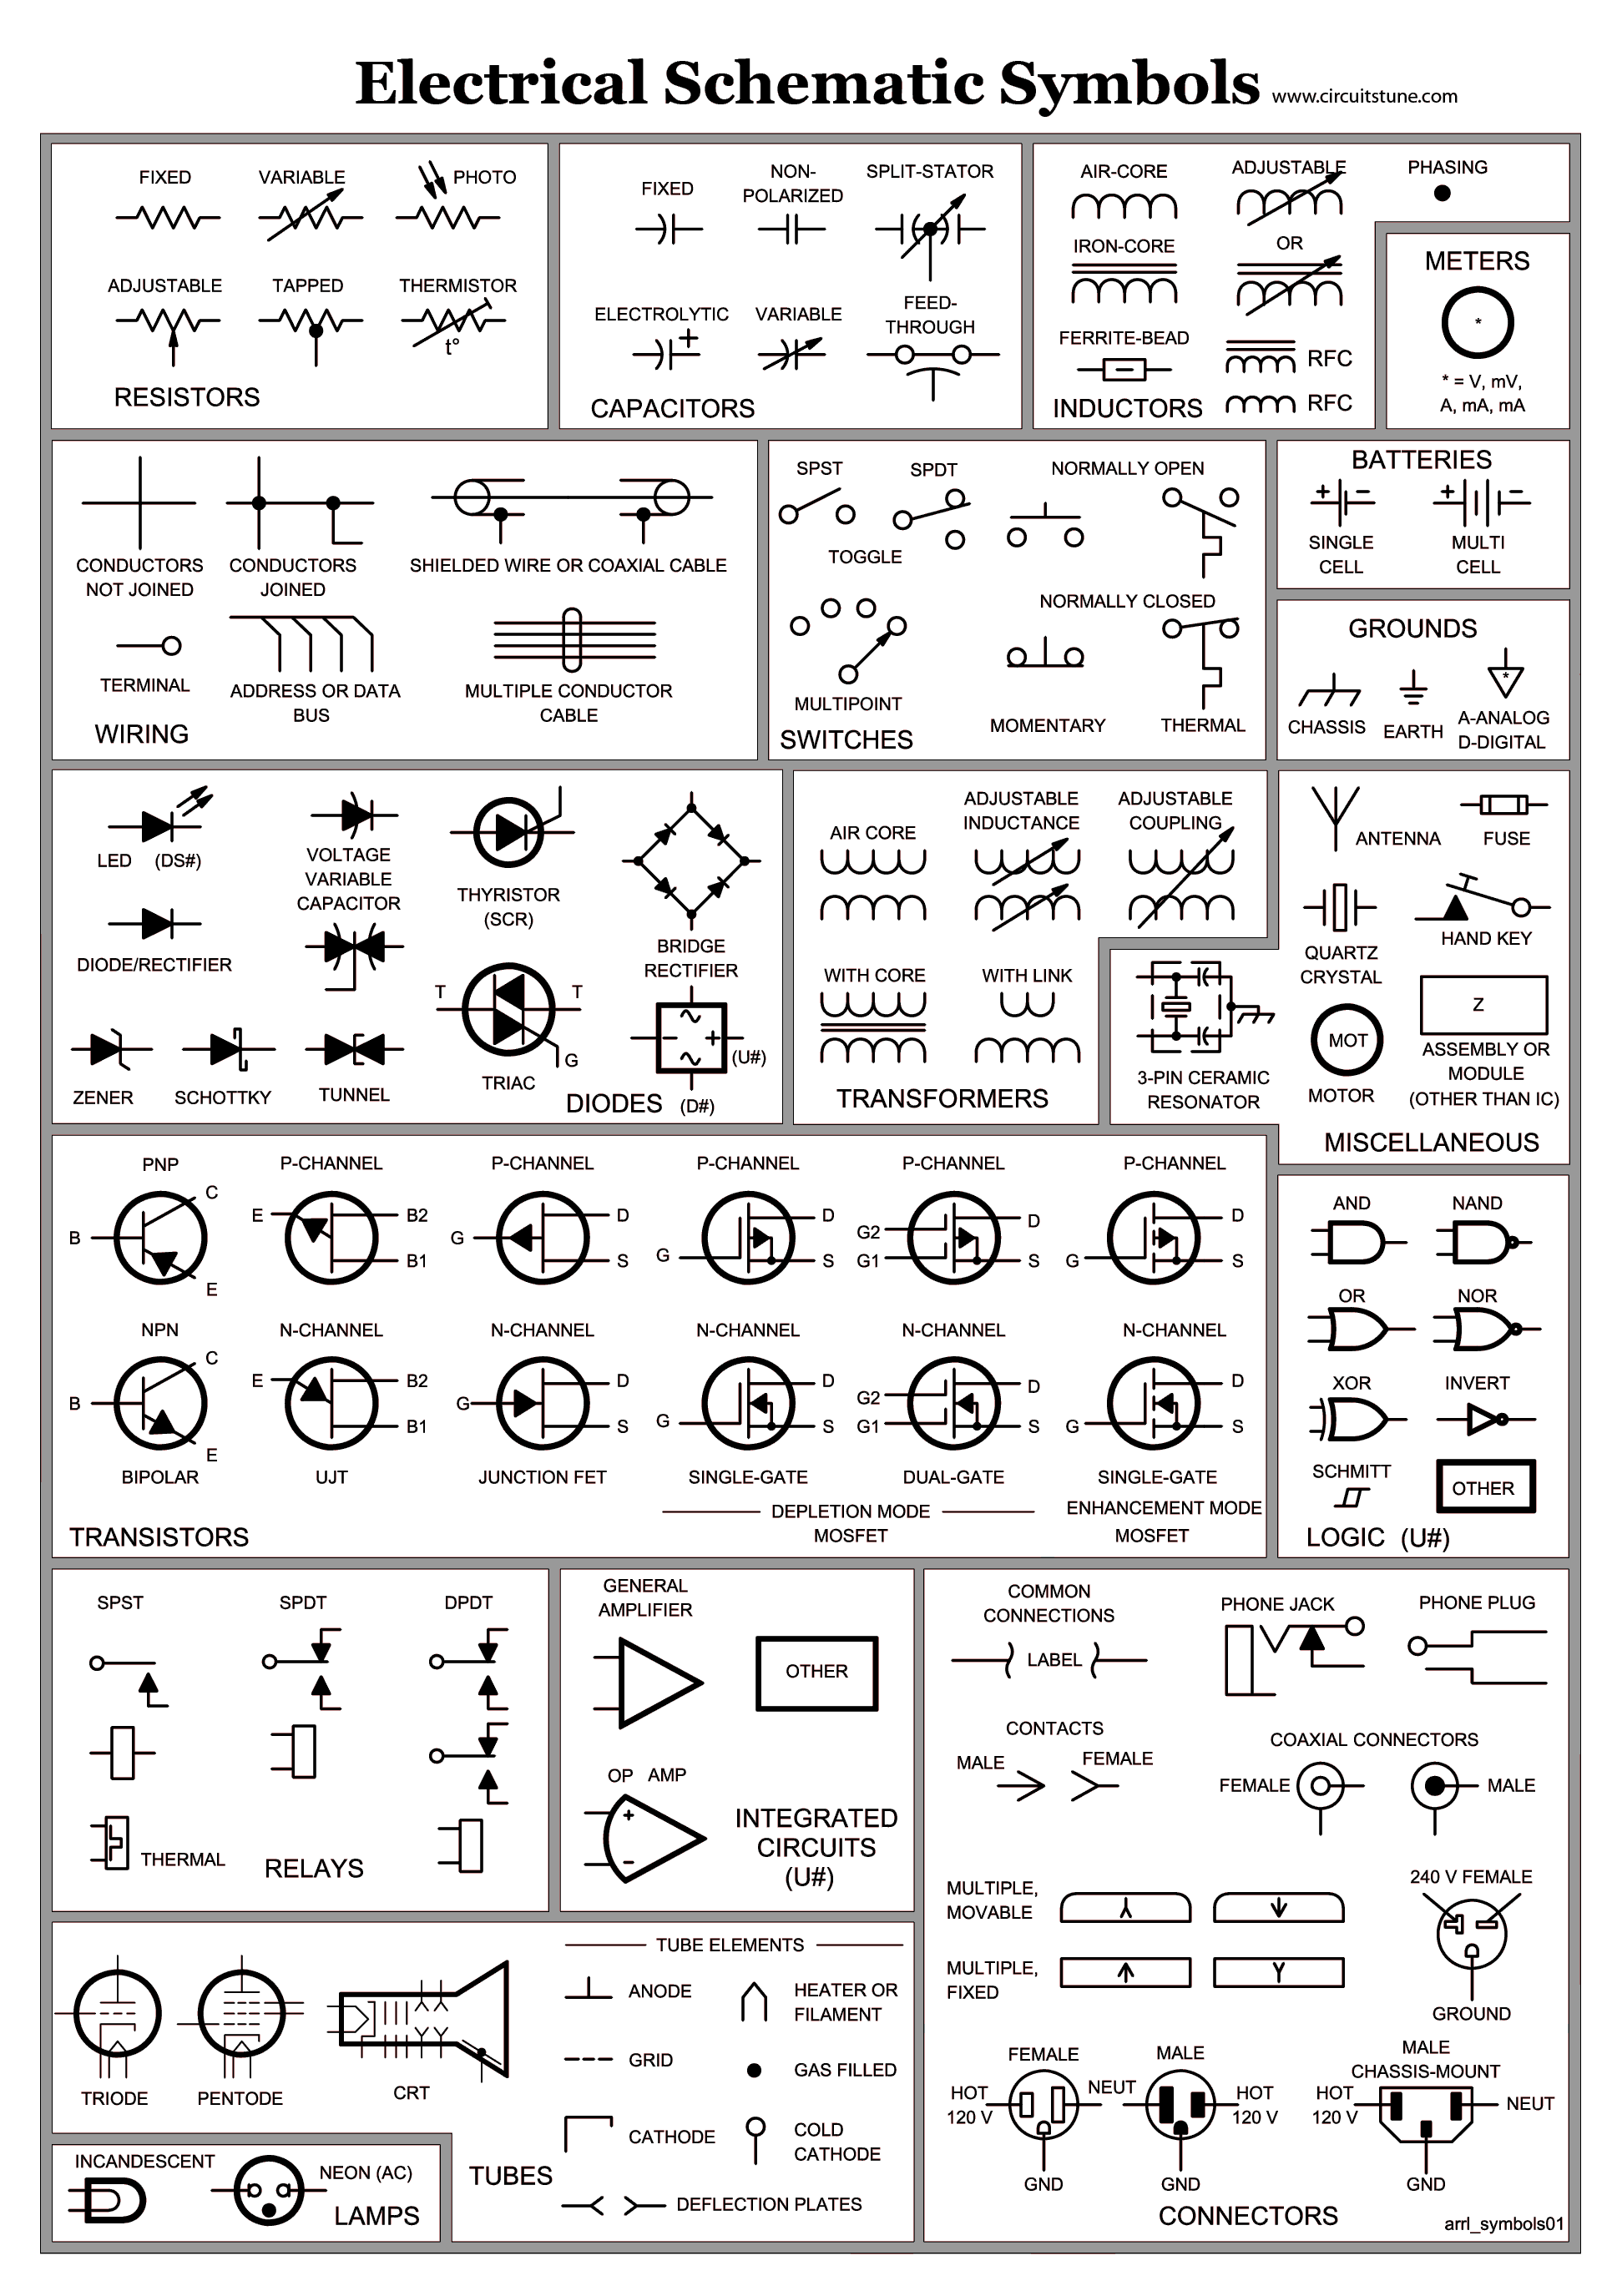 Electrical wiring diagram symbols wiring data electrical schematic symbols wire diagram symbols automotive wiring european wiring diagram symbols electrical schematic symbols wire cheapraybanclubmaster